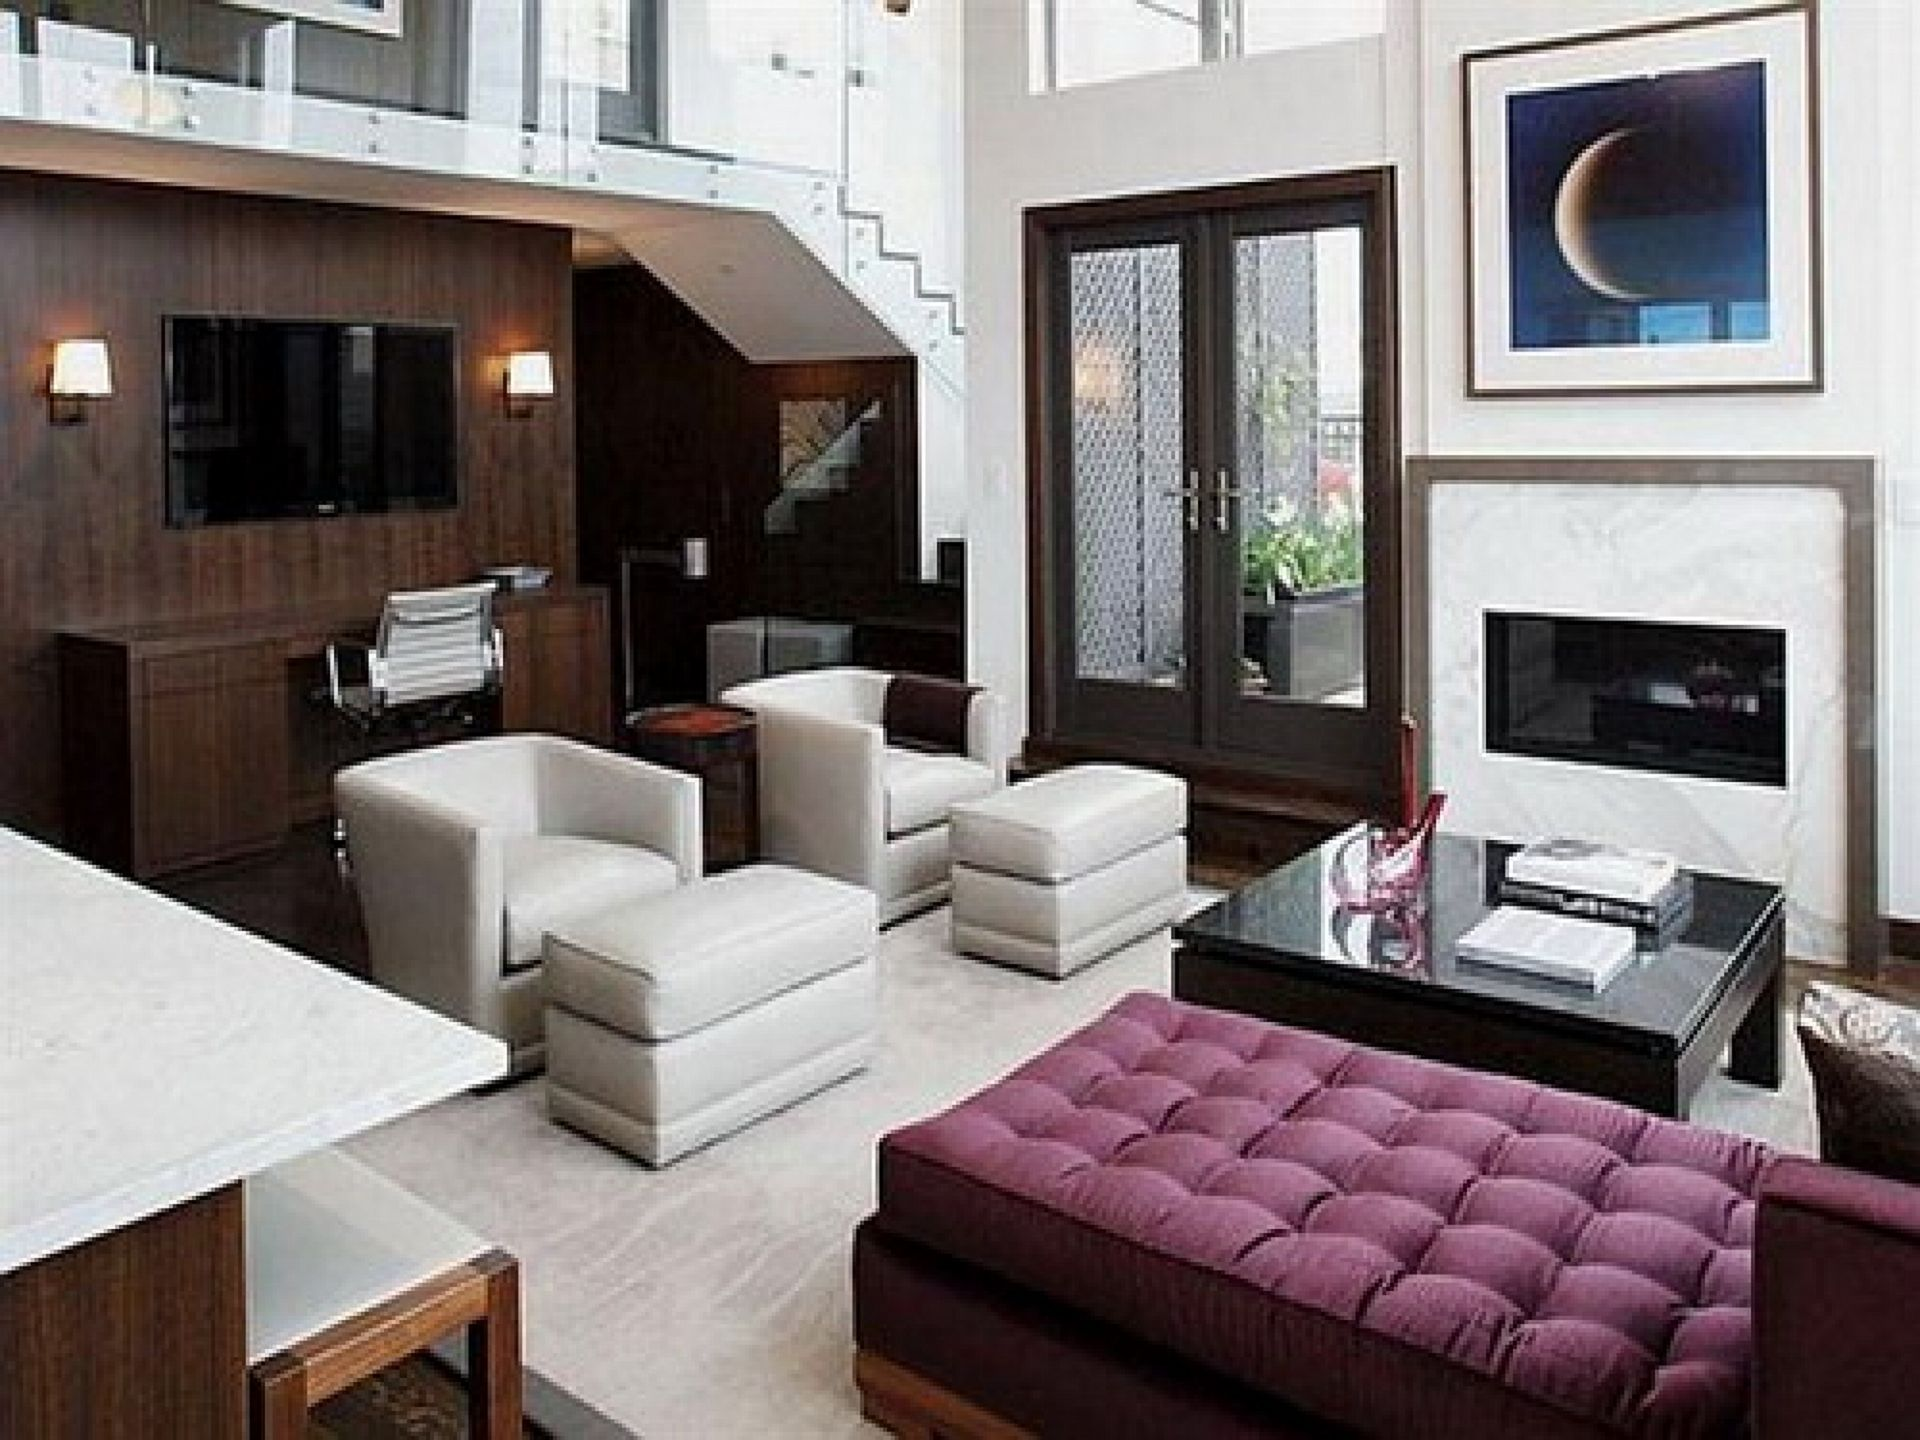 10 beautiful apartment living room decoration ideas on a